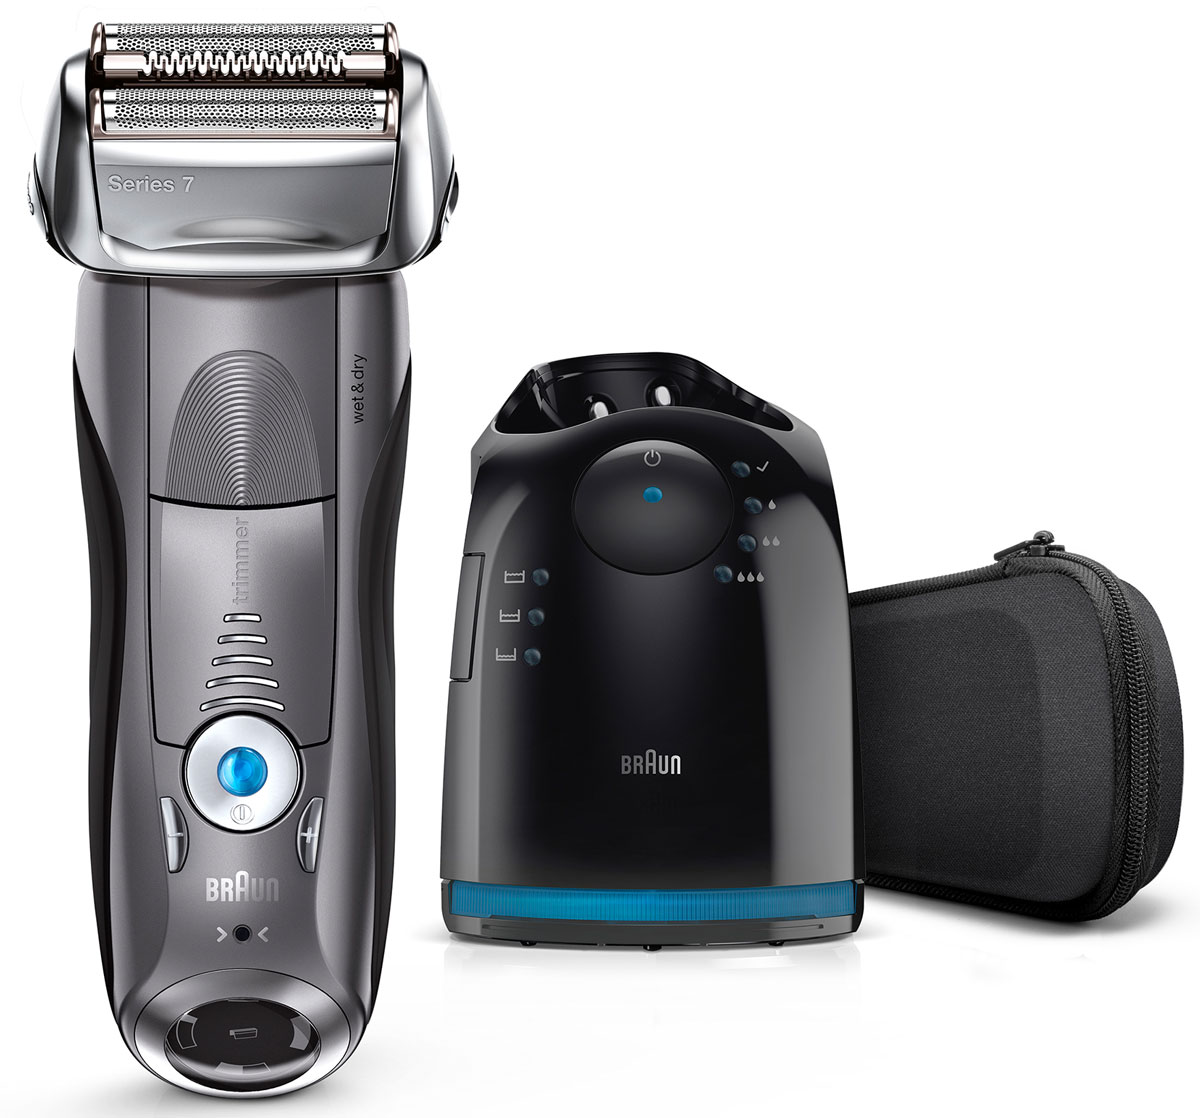 Braun Series 7 7865cc Wet&Dry, Grey электробритва